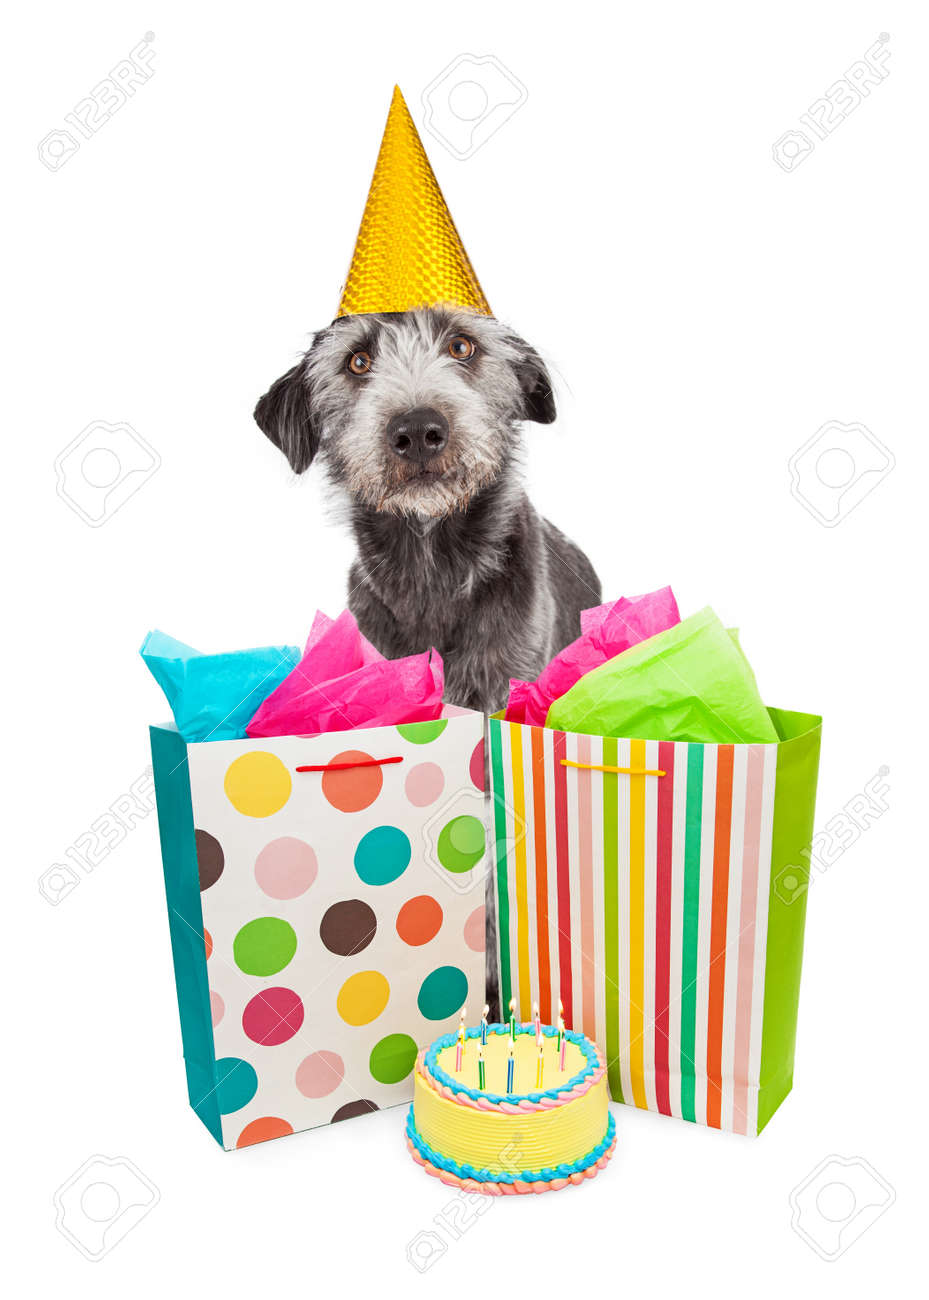 Funny Photo Of A Dog Wearing Birthday Party Hat With Presents And Cake Stock